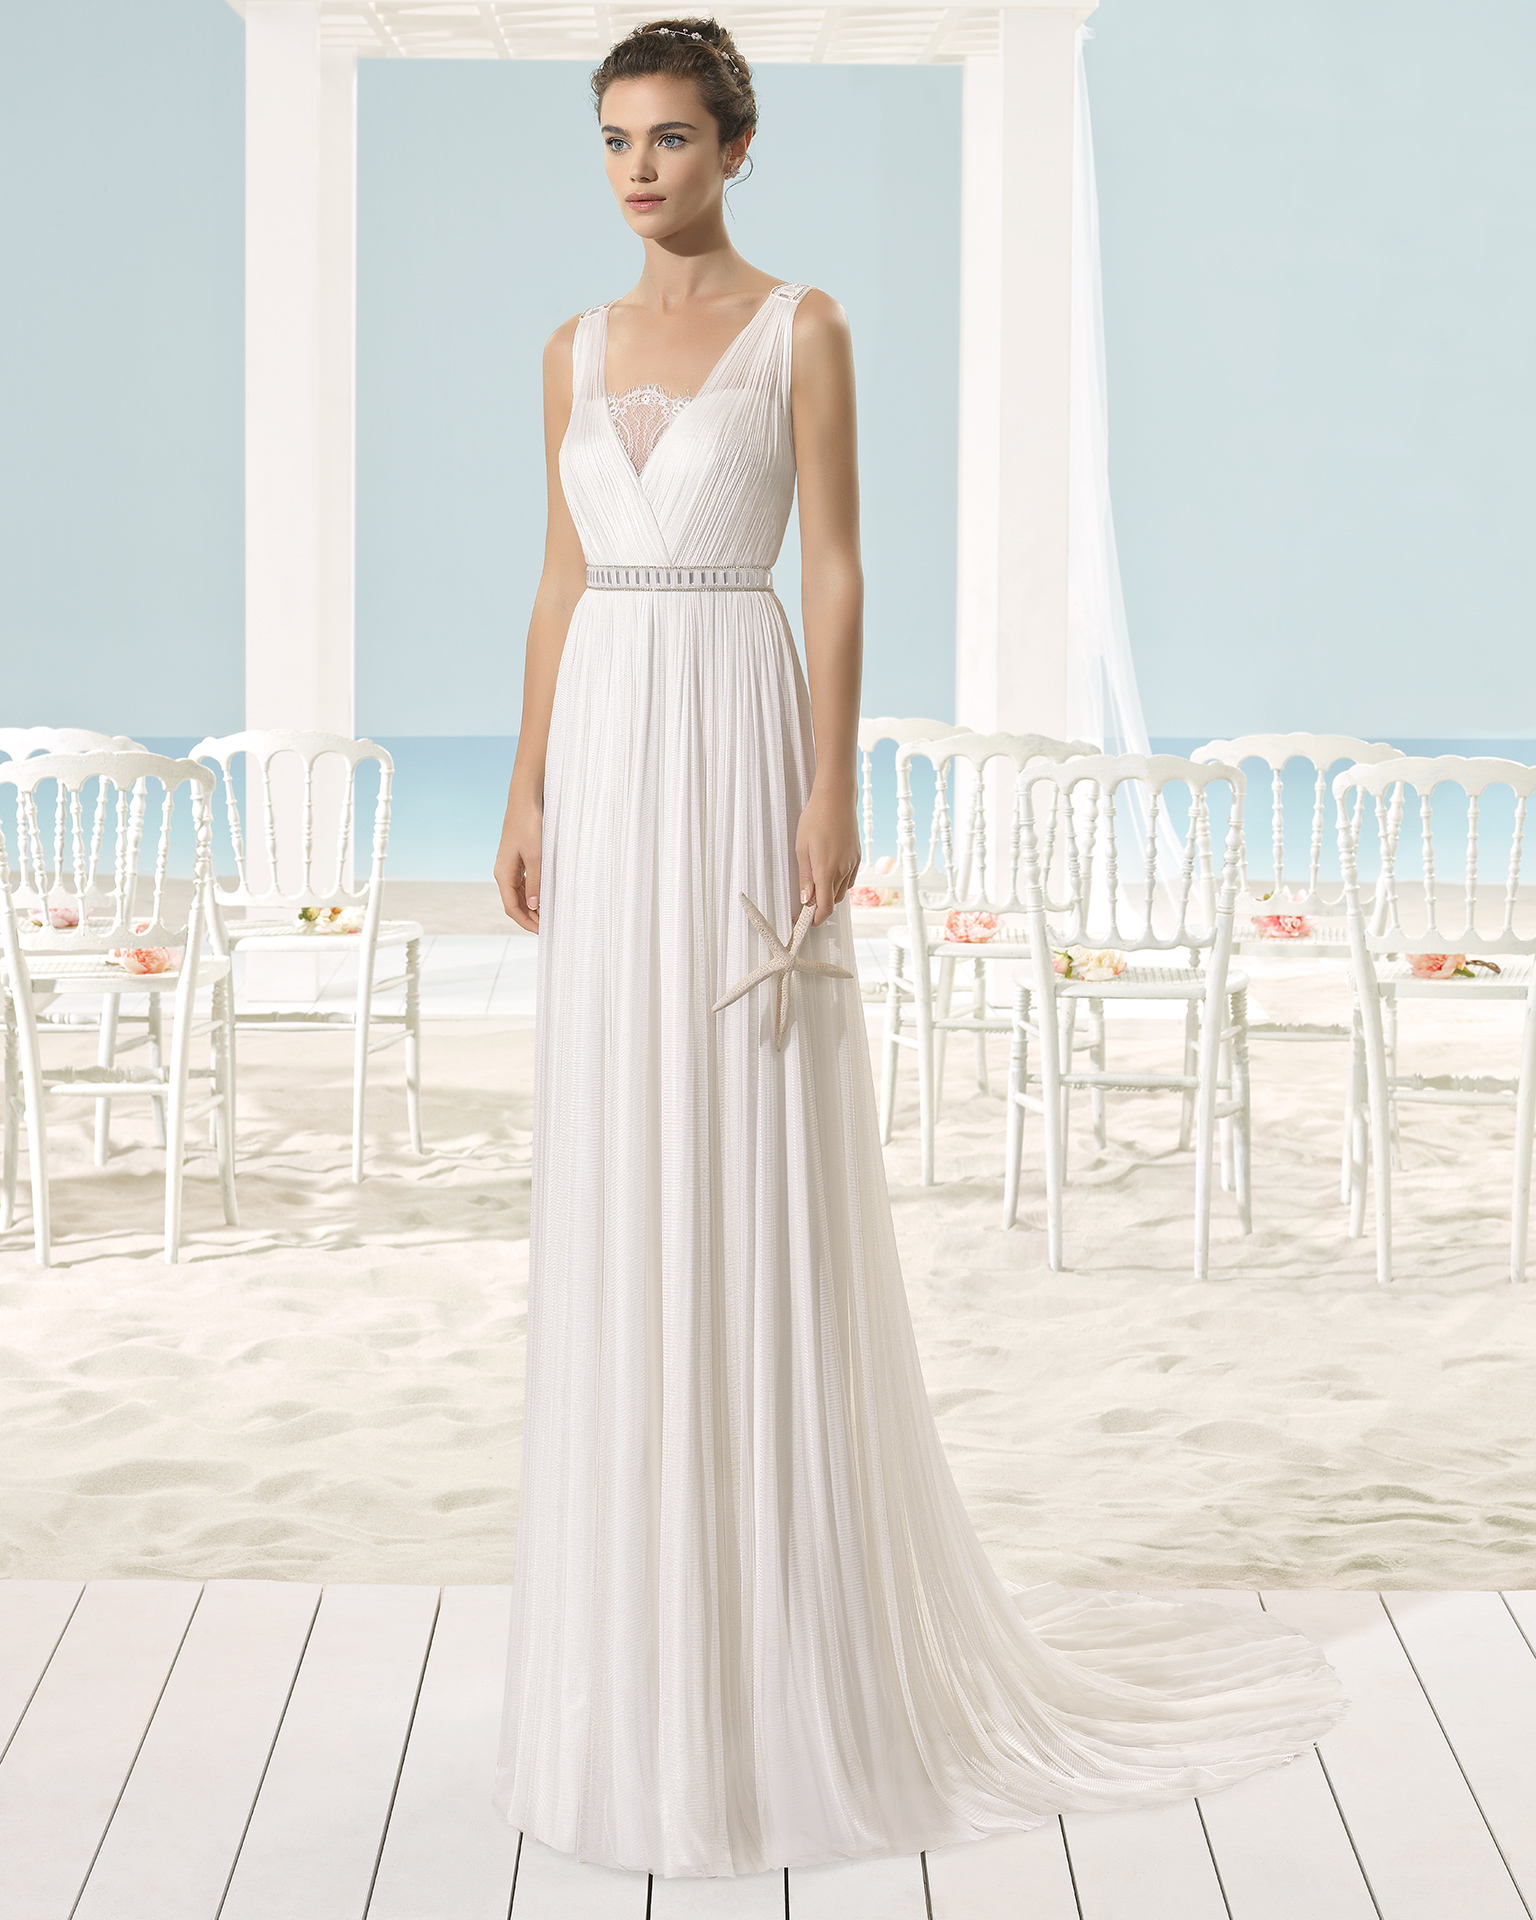 XARIA Abito da sposa Aire Barcelona Beach Wedding 2017